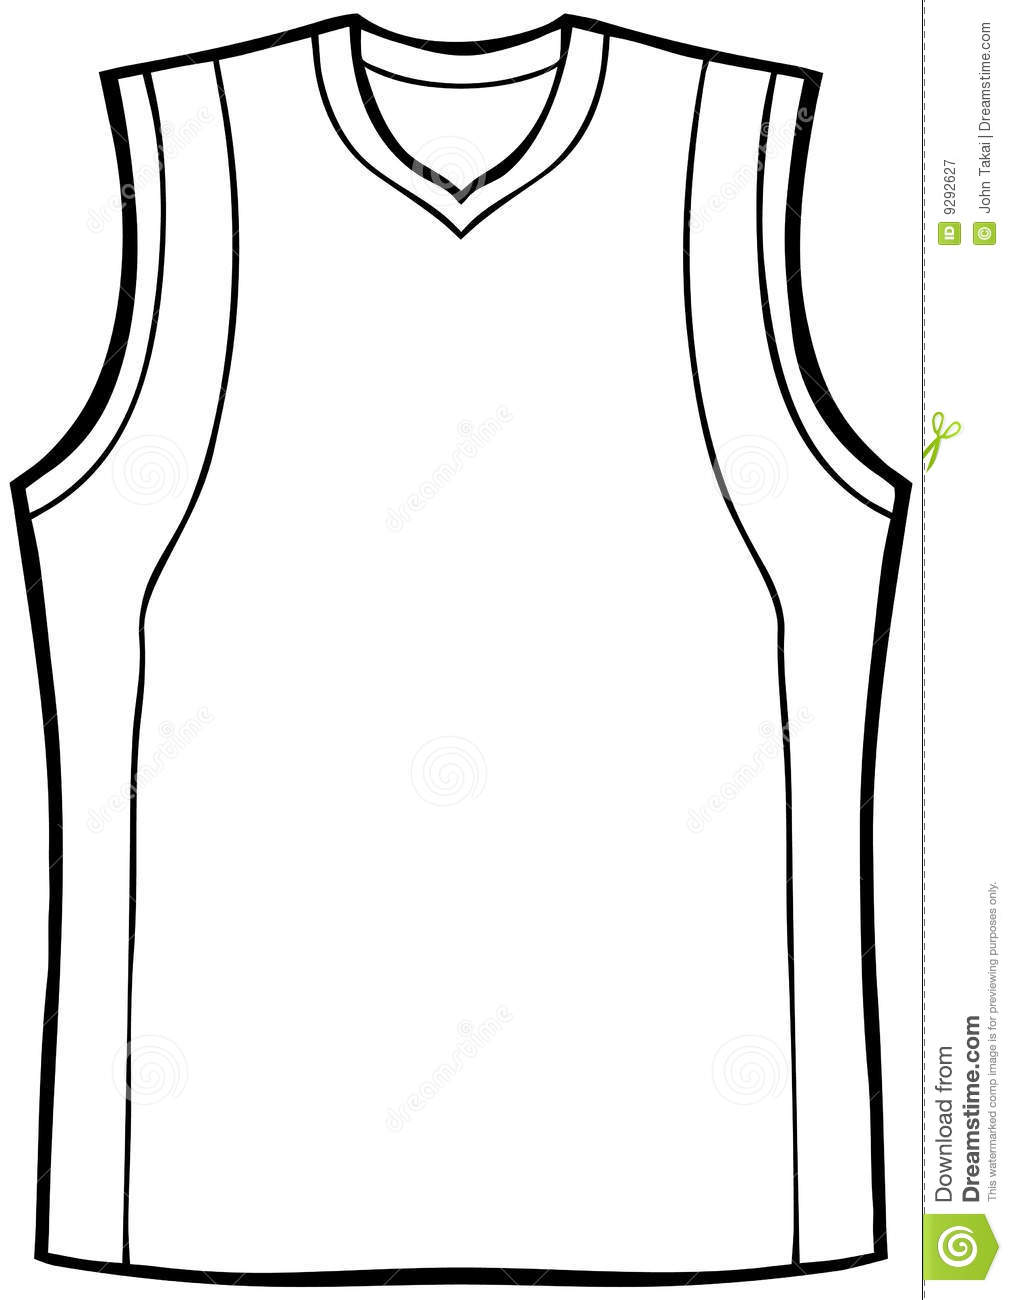 Sports jersey clipart black and white graphic transparent Blank Basketball Jersey Clipart | Free download best Blank ... graphic transparent